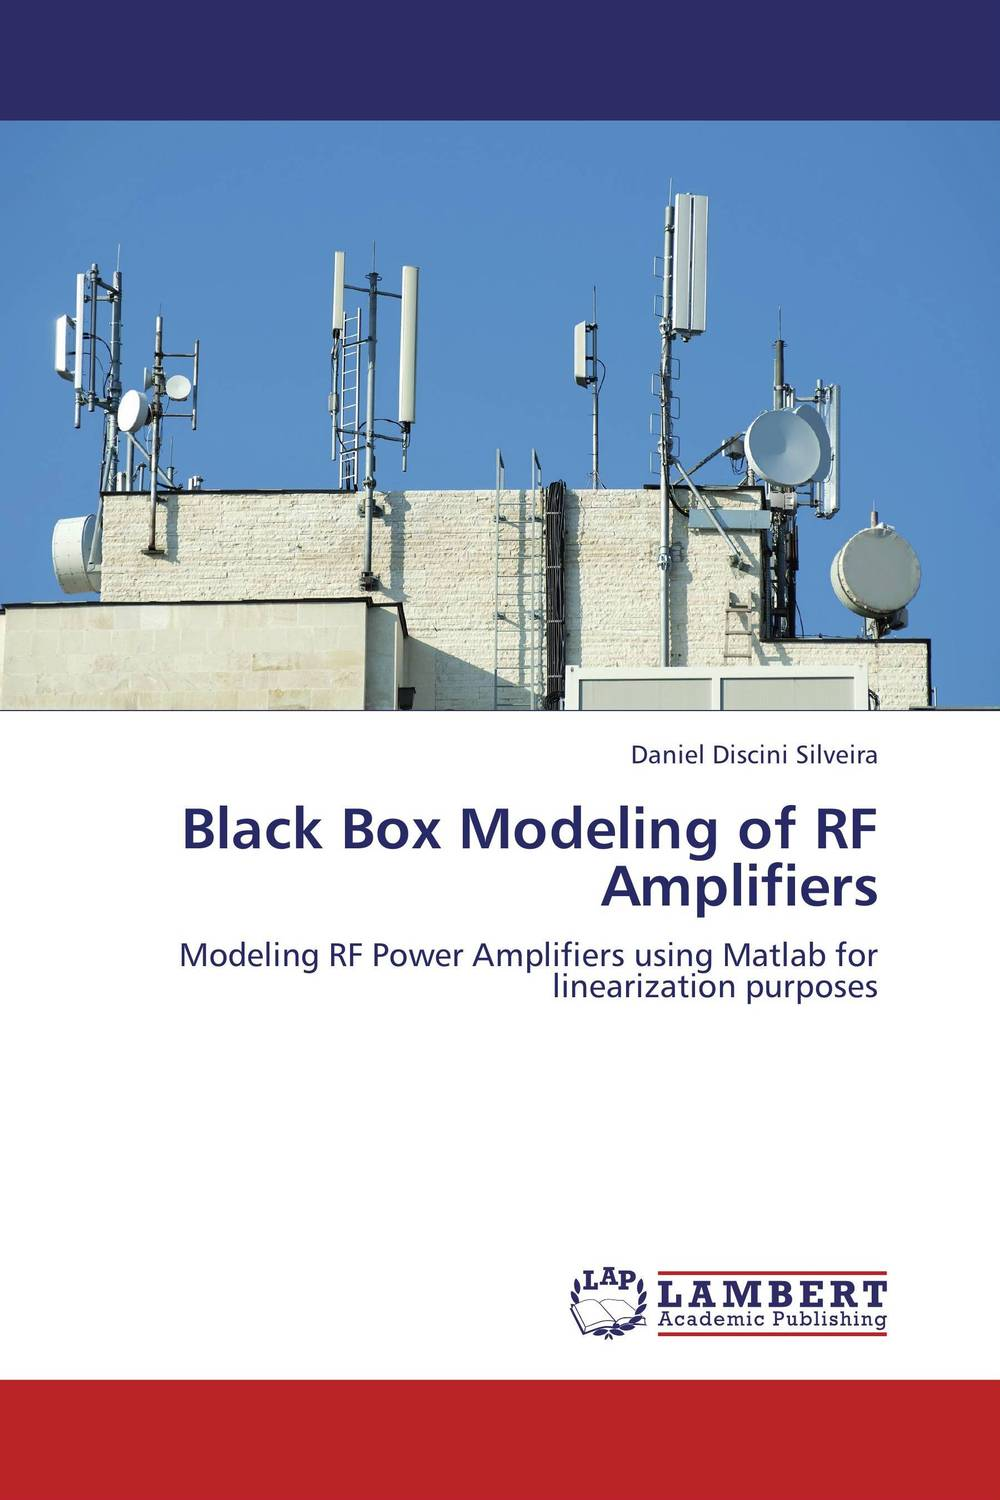 Black Box Modeling of RF Amplifiers dr juan a martinez velasco transient analysis of power systems solution techniques tools and applications